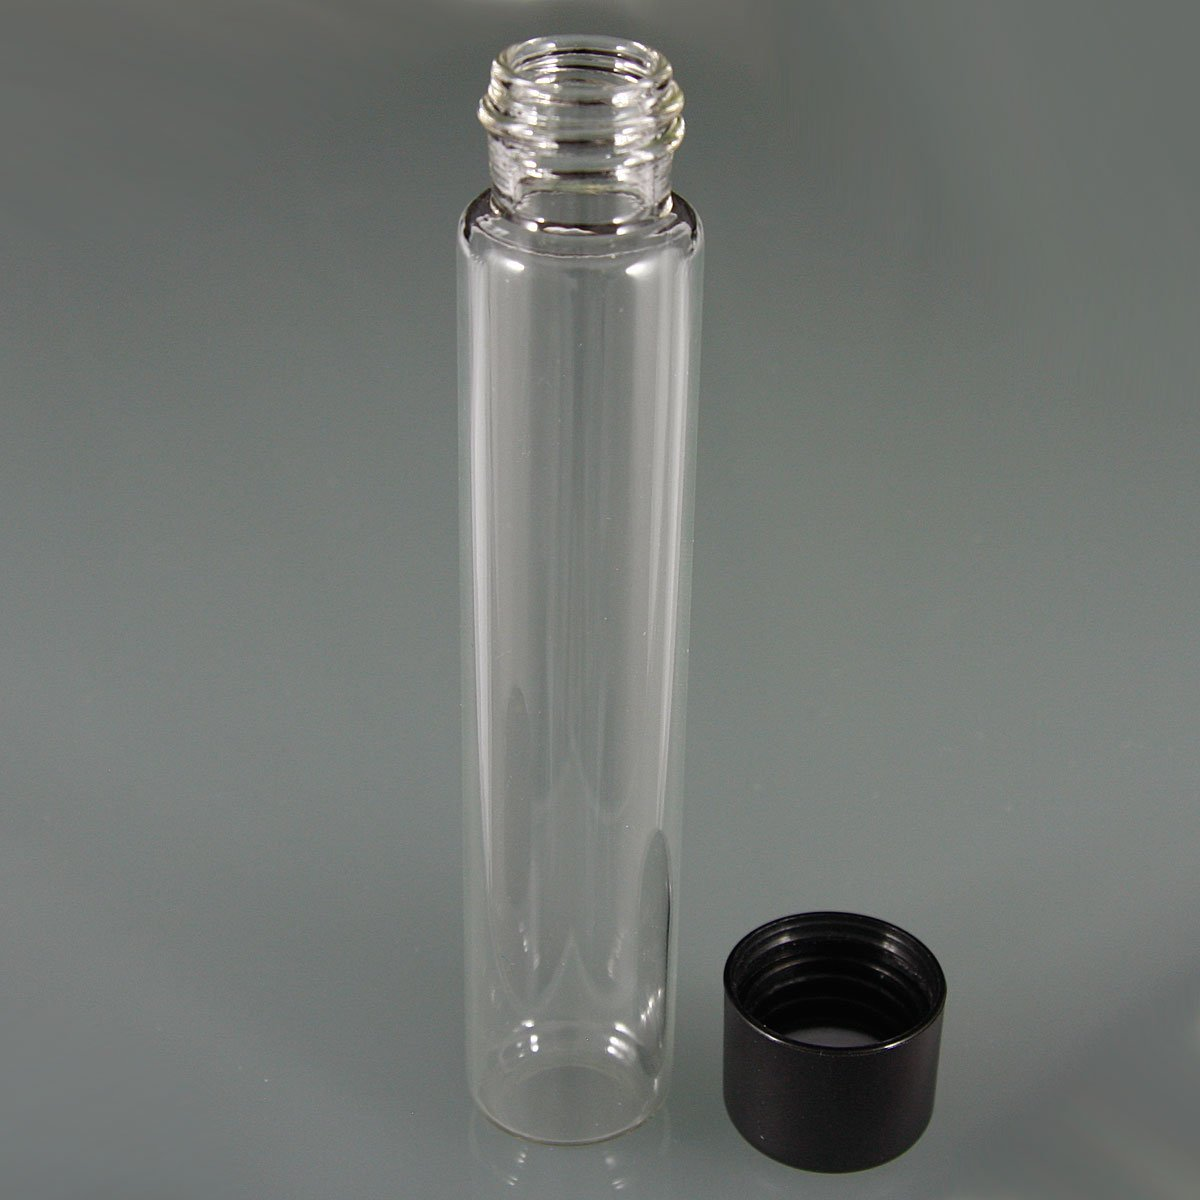 Glass Tube with Child-Resistant Black Lid 22mm x 116mm Clear / Black